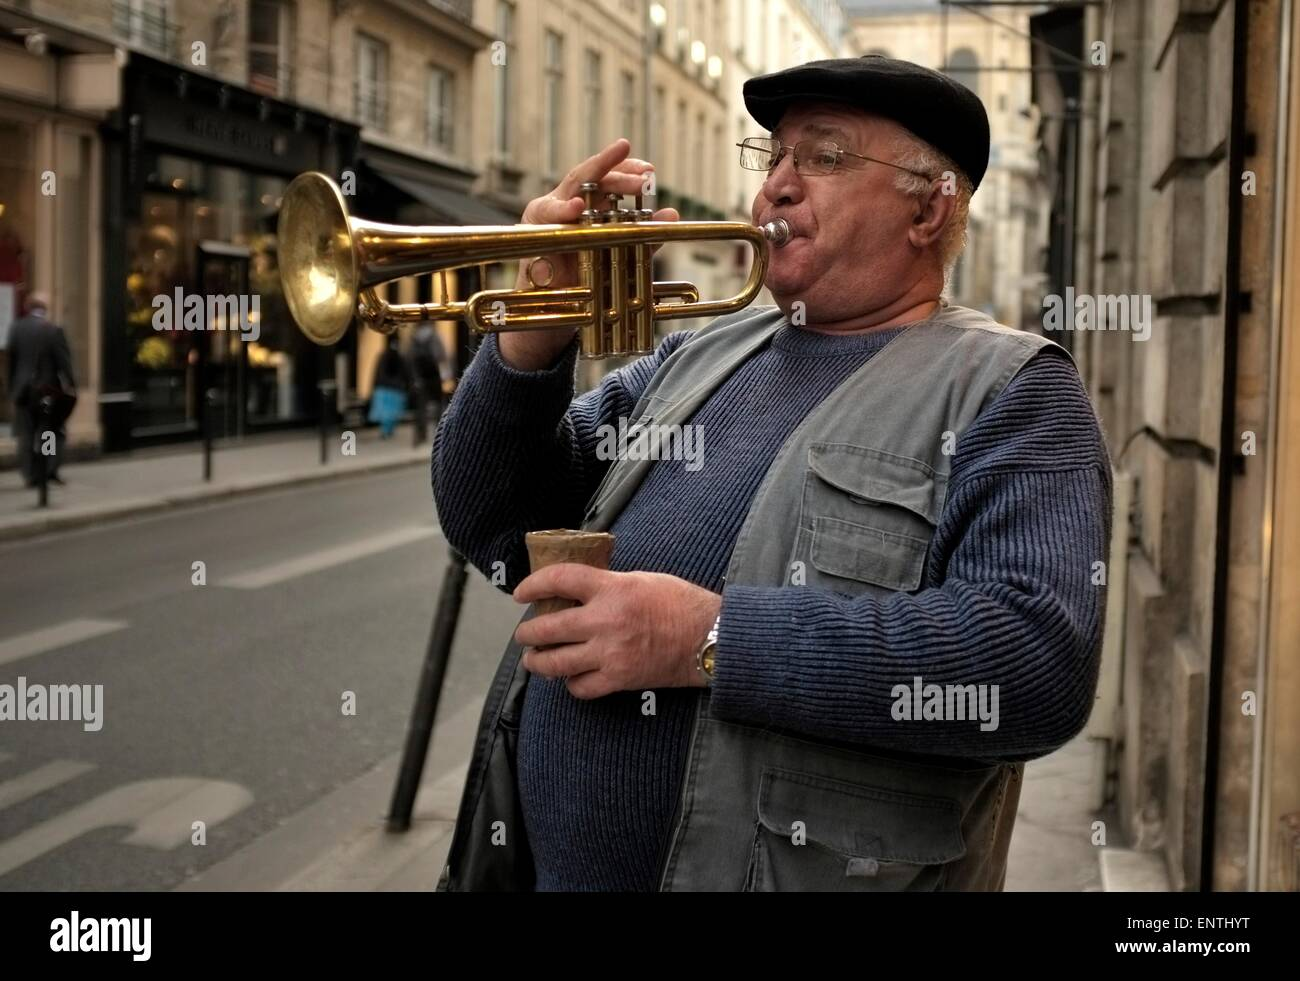 AJAXNETPHOTO. PARIS, FRANCE - STREET ENTERTAINER - A BUSKER PLIES HIS TRADE ON THE CITY STREETS. PHOTO:JONATHAN - Stock Image